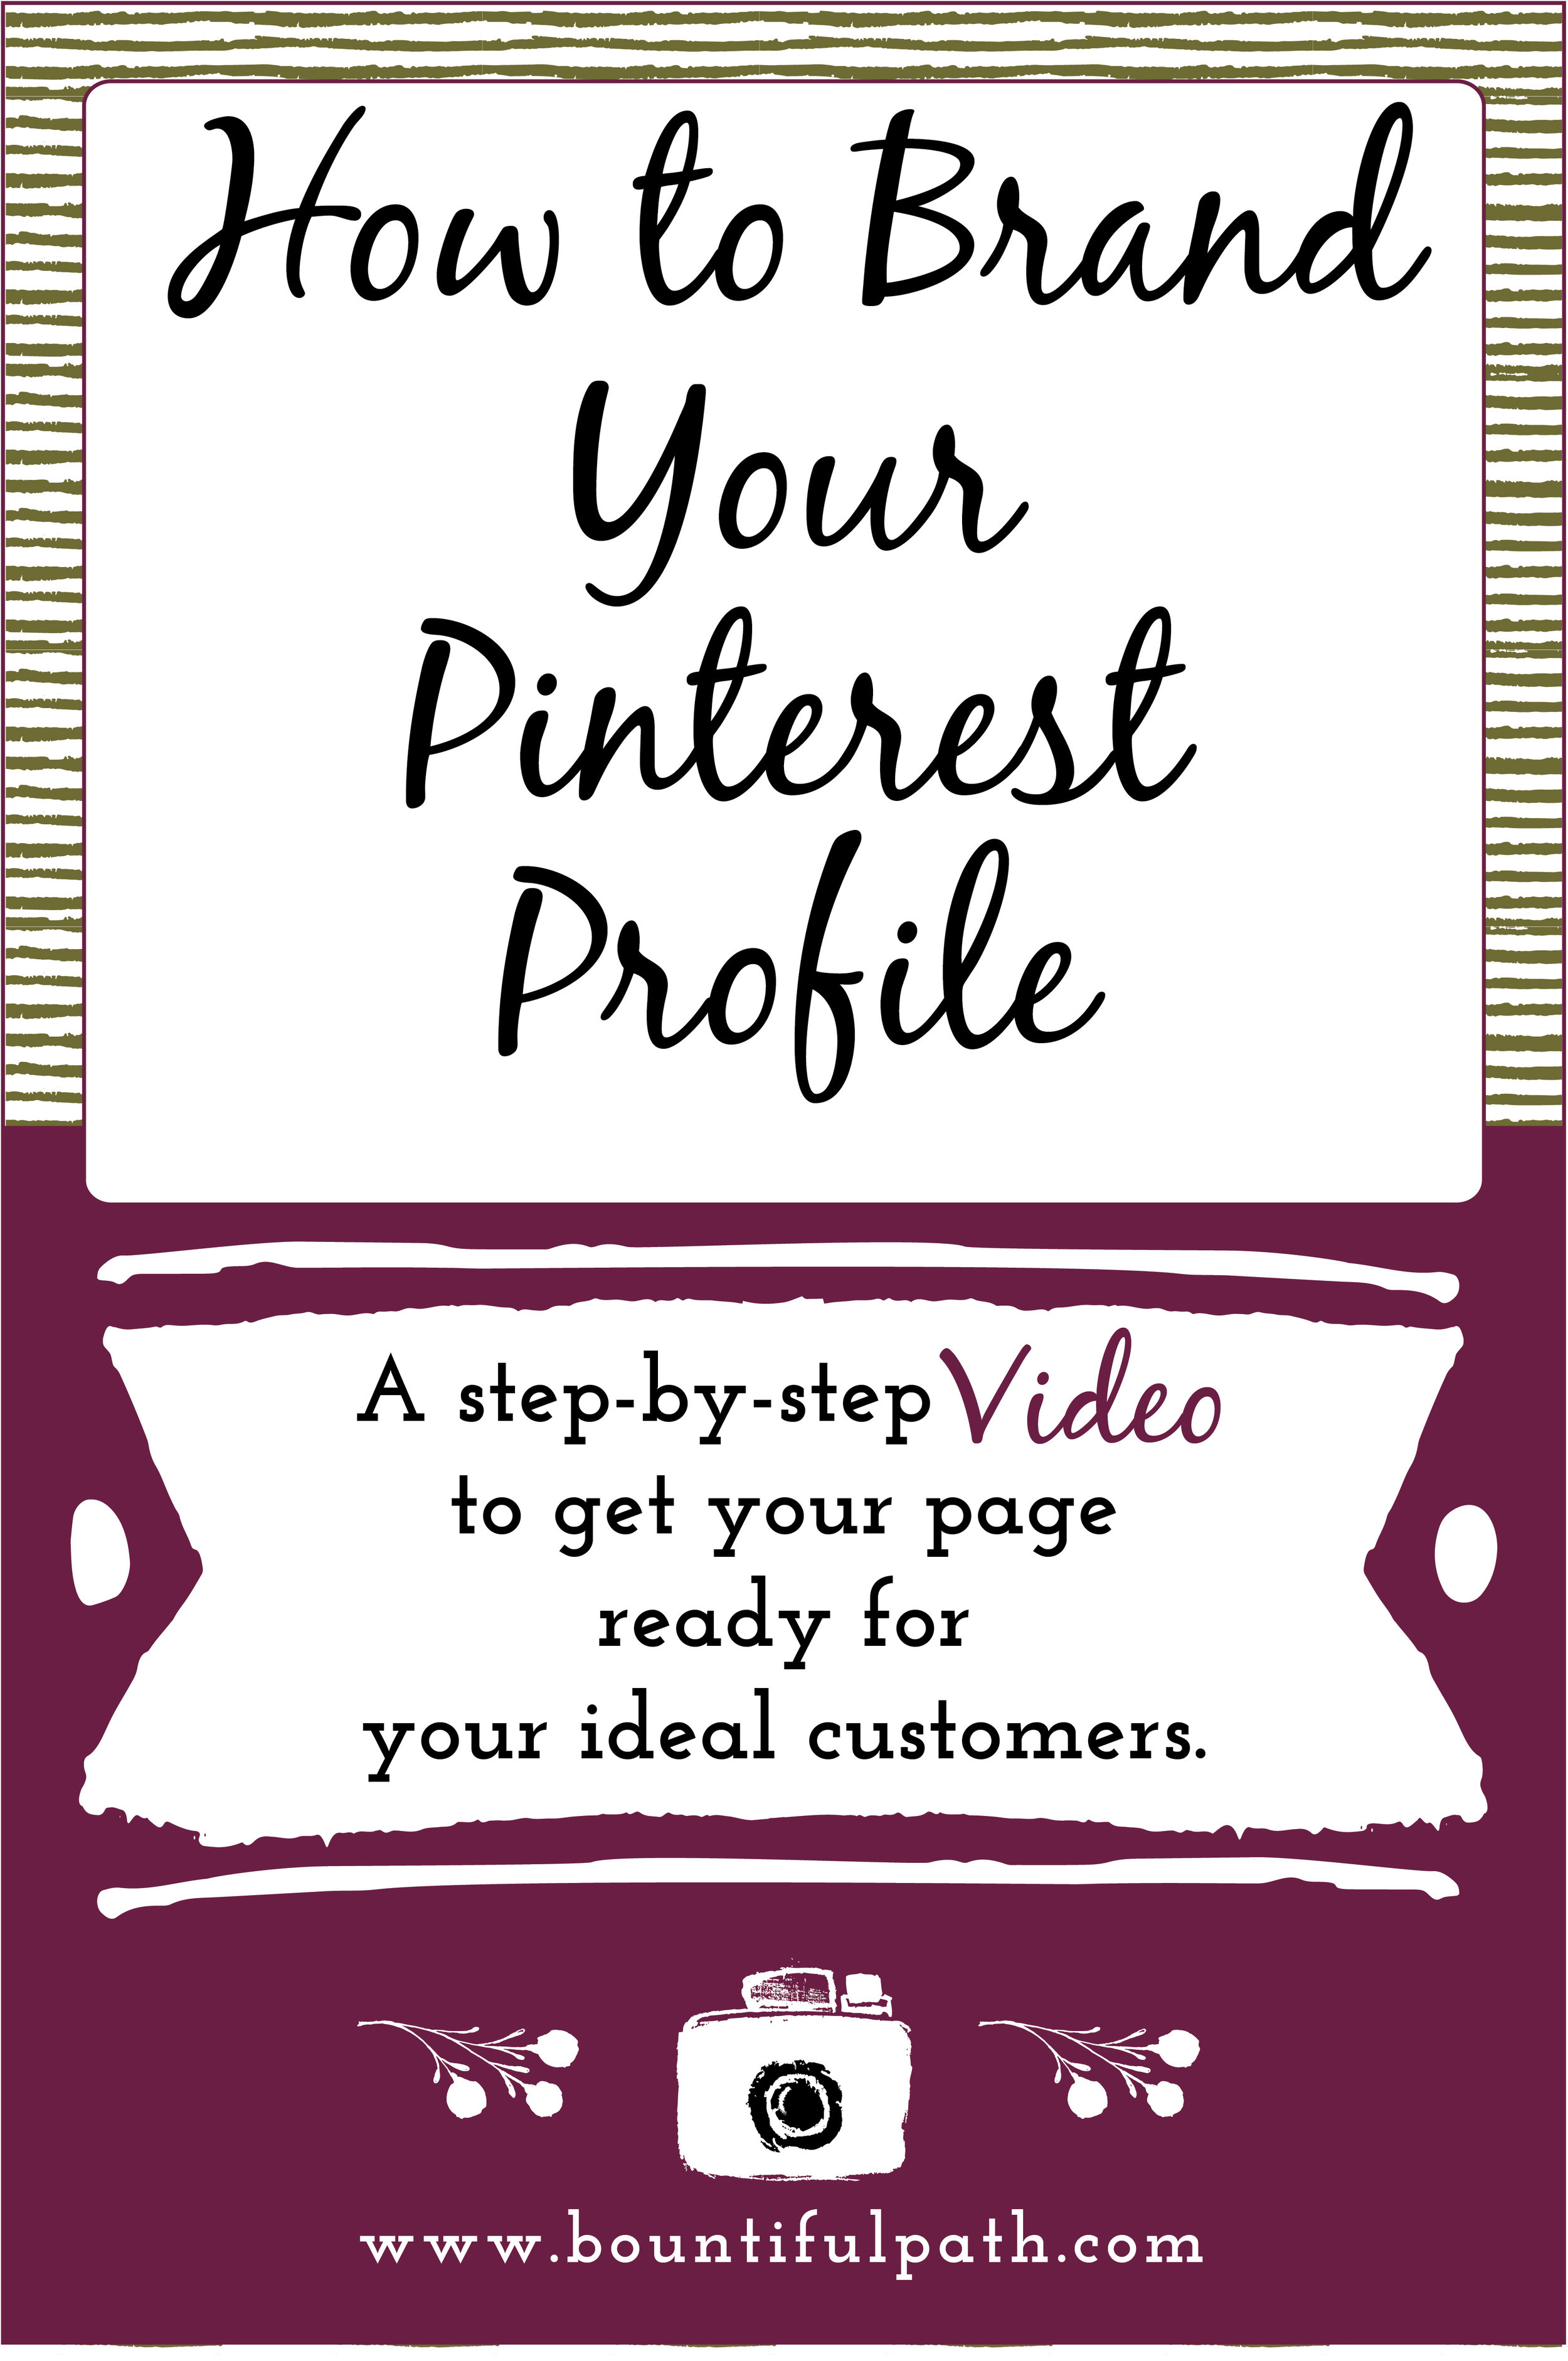 How to make your Pinterest profile look polished for your brand by Bountiful Path